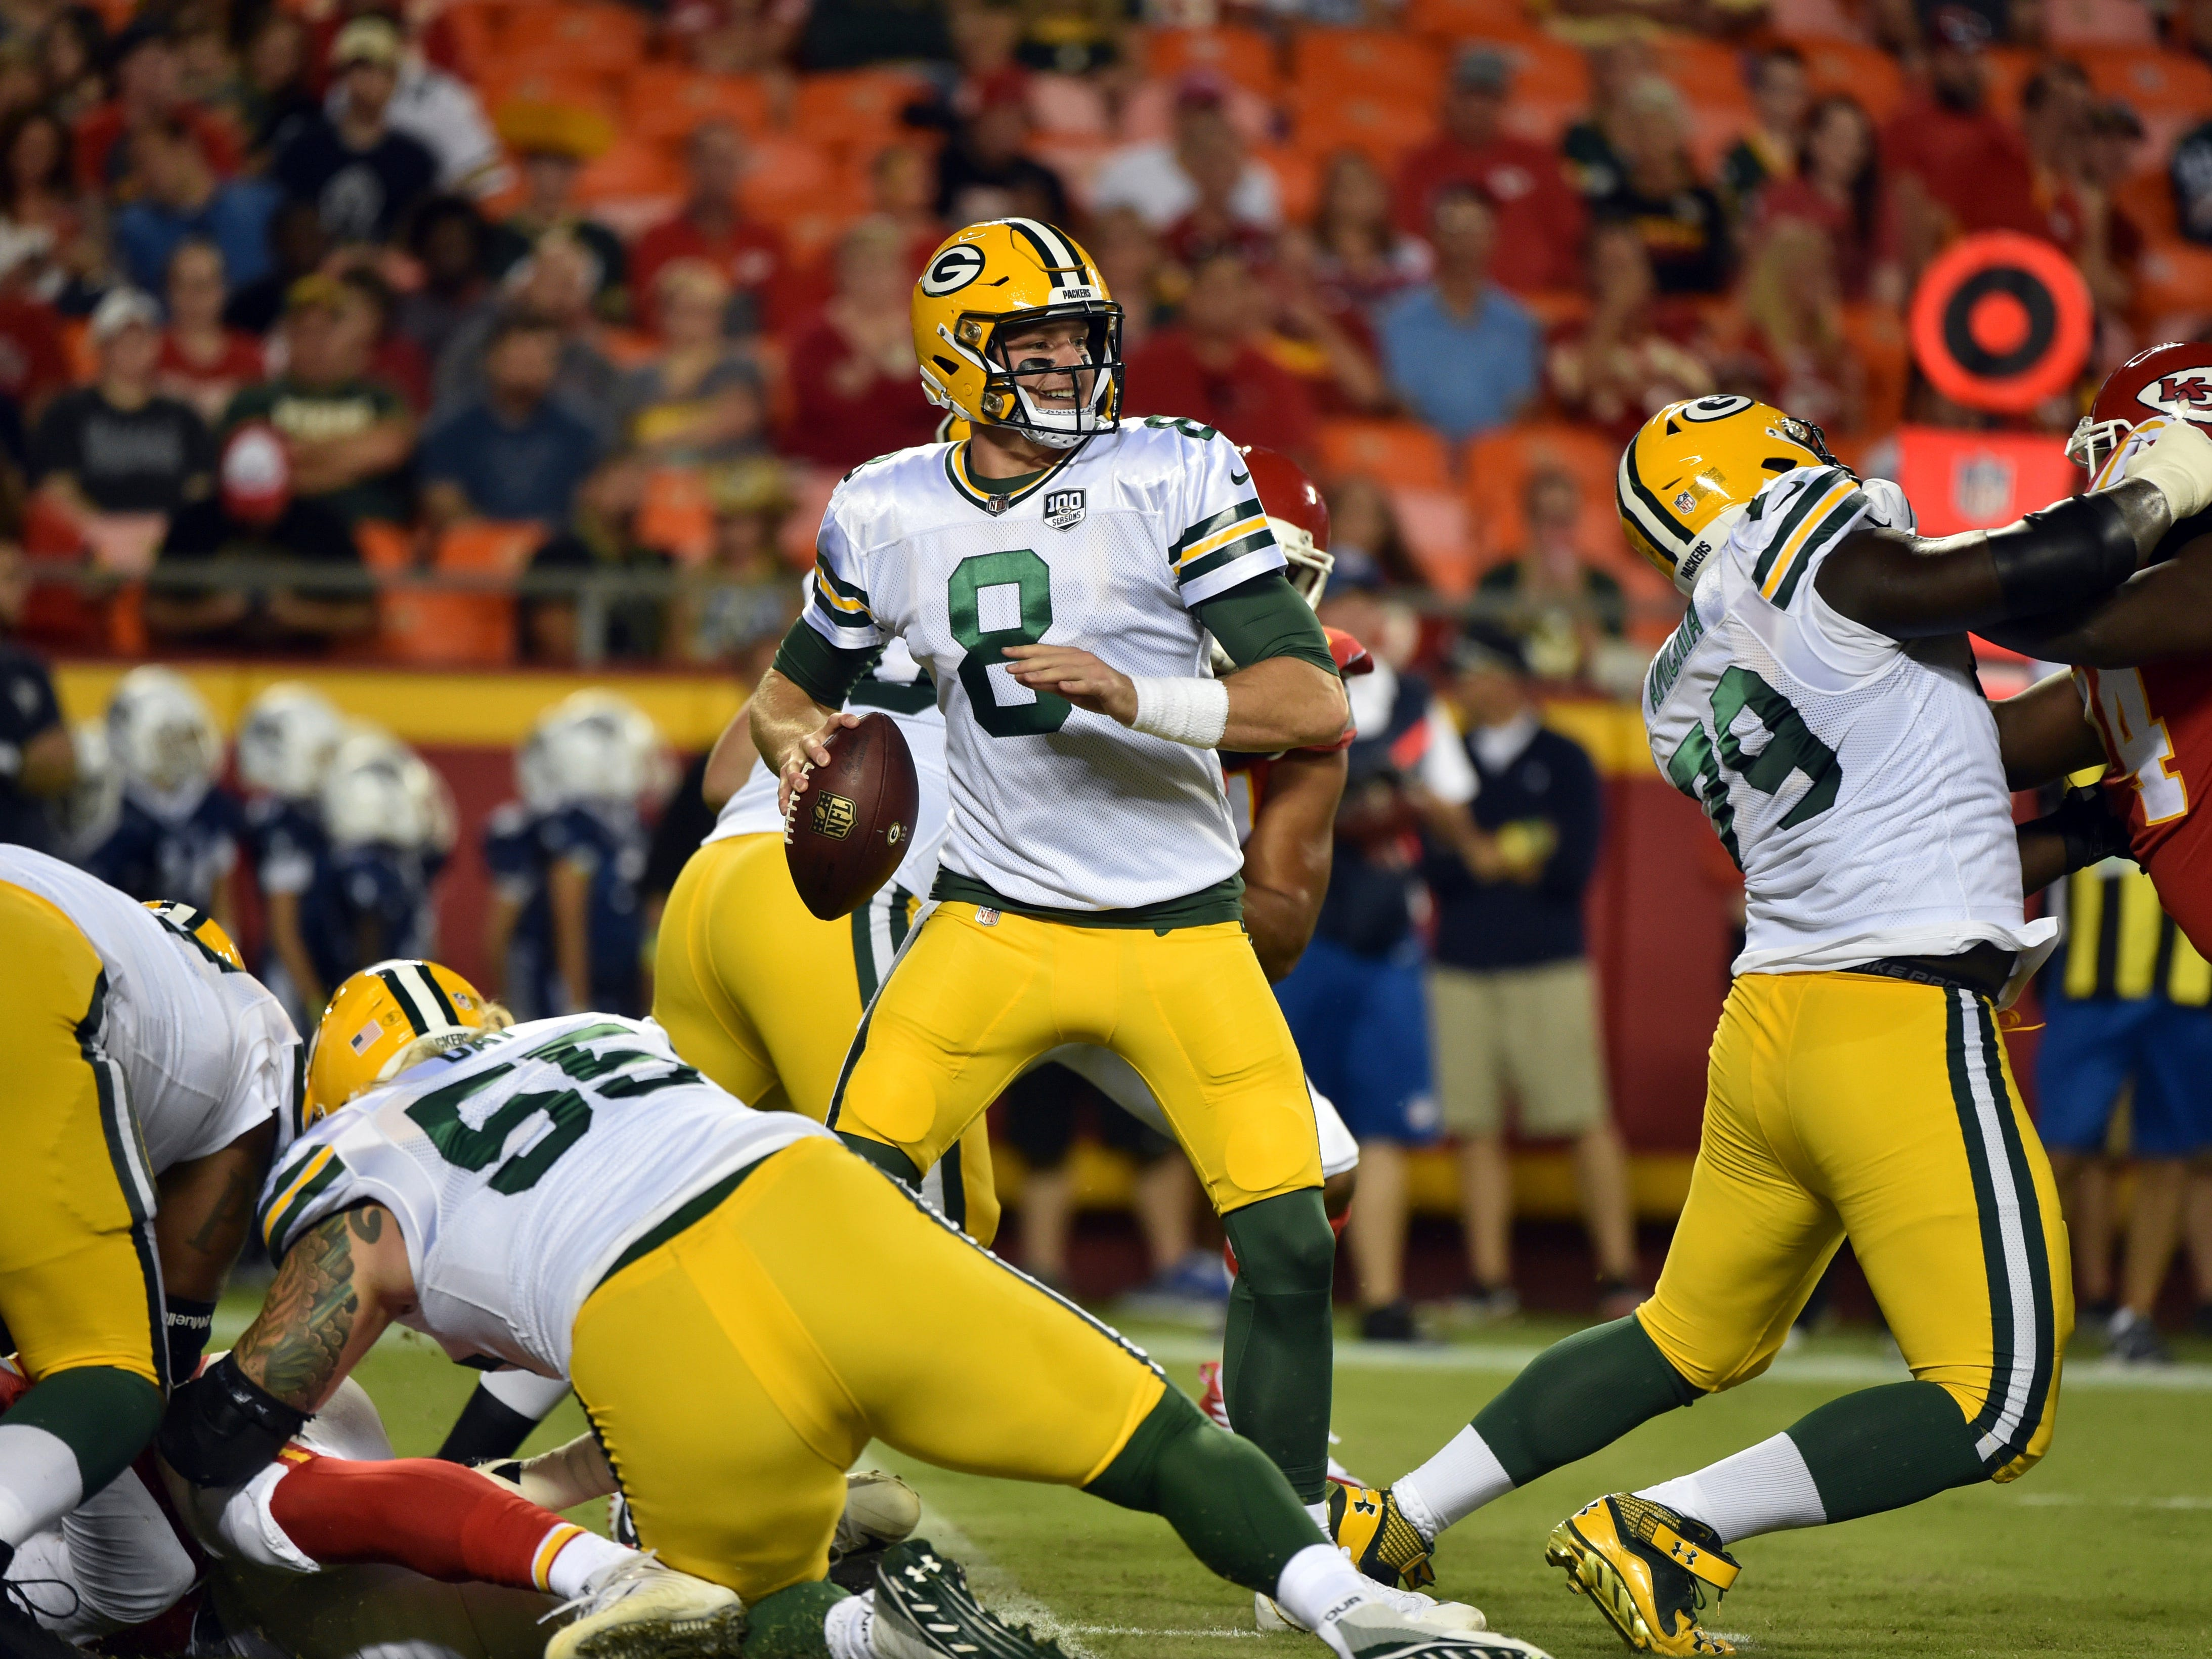 Green Bay Packers quarterback Tim Boyle (8) looks to throw during the first half of an NFL preseason football game against the Kansas City Chiefs in Kansas City, Mo., Thursday, Aug. 30, 2018.